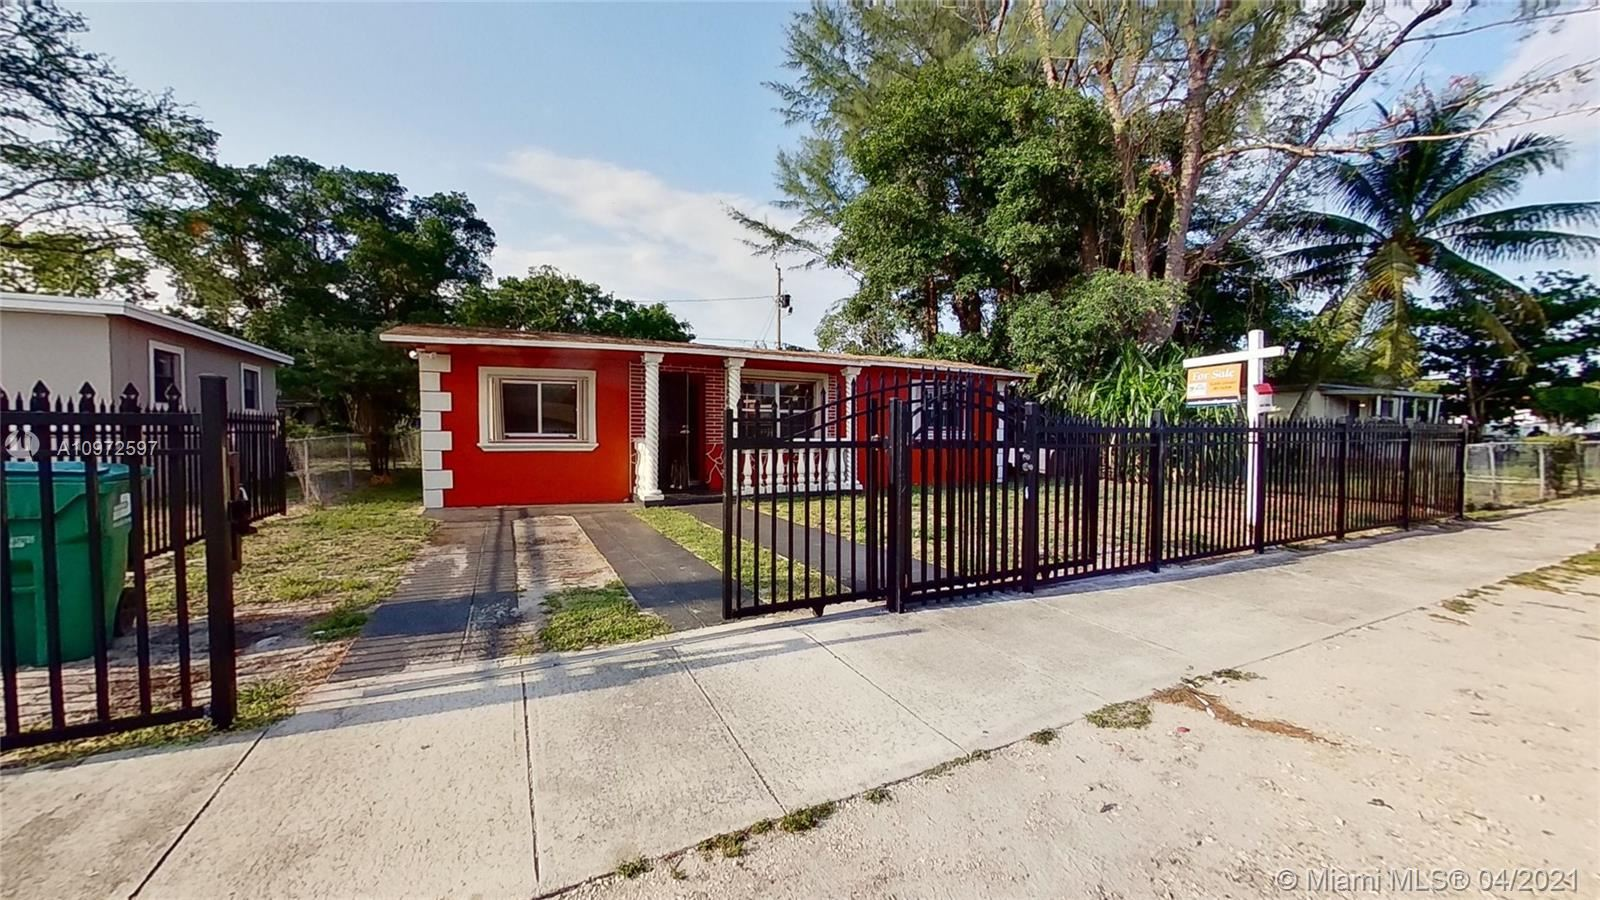 1869 NW 83rd Ter, Miami, FL 33147 - #: A10972597